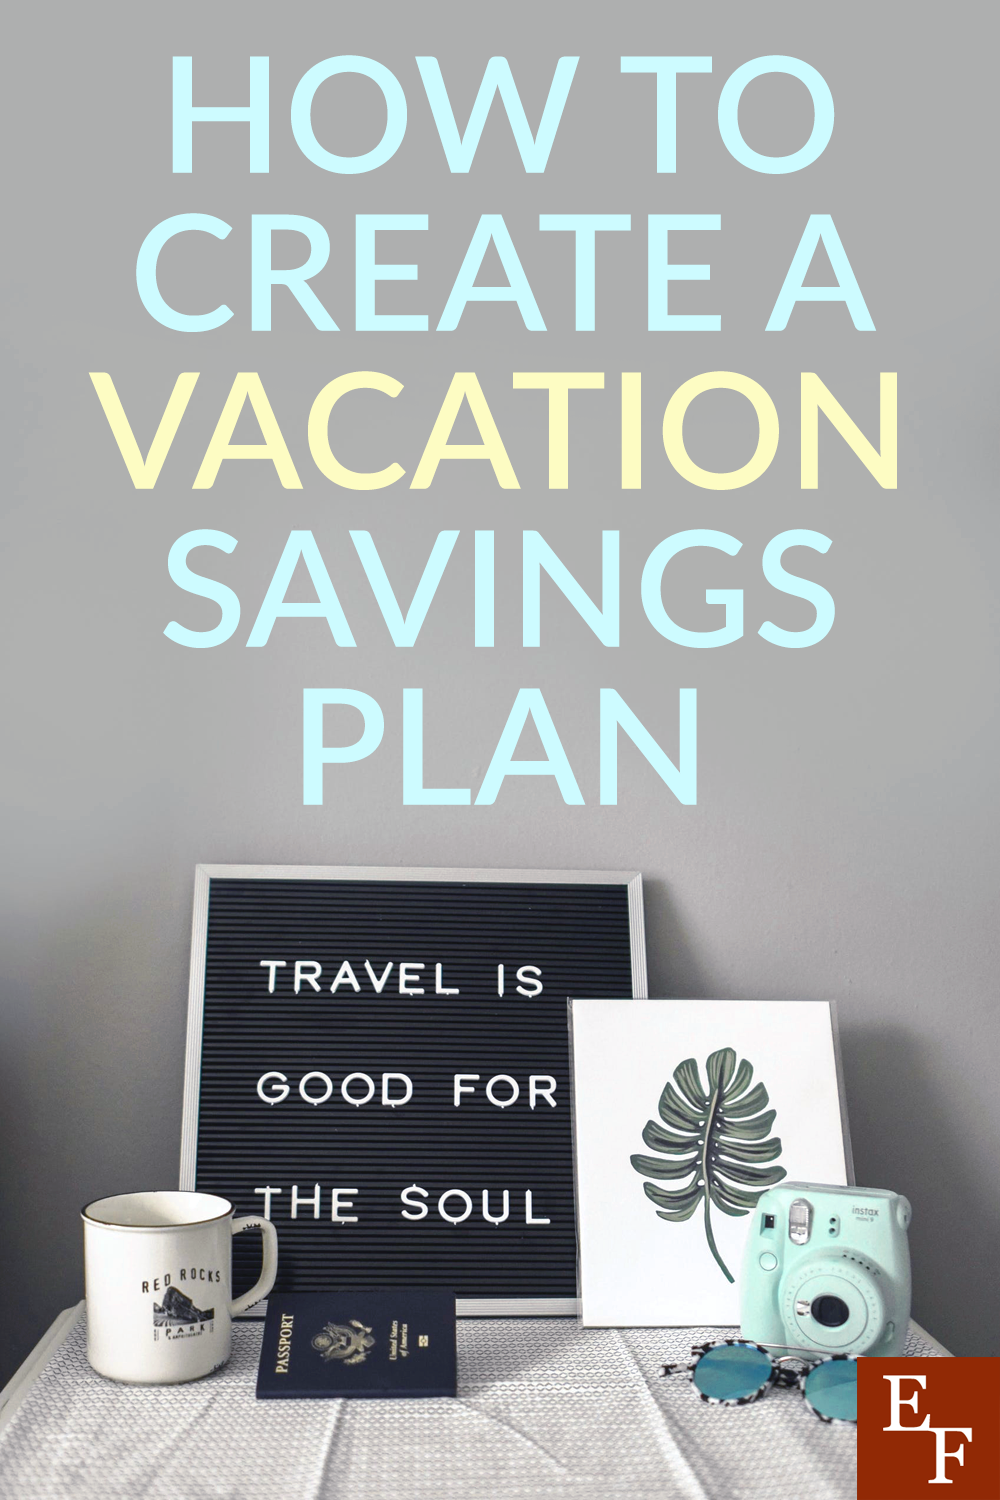 Vacations are becoming a reality for many people with places opening back up. We focused on sharing how to create a vacation savings plan